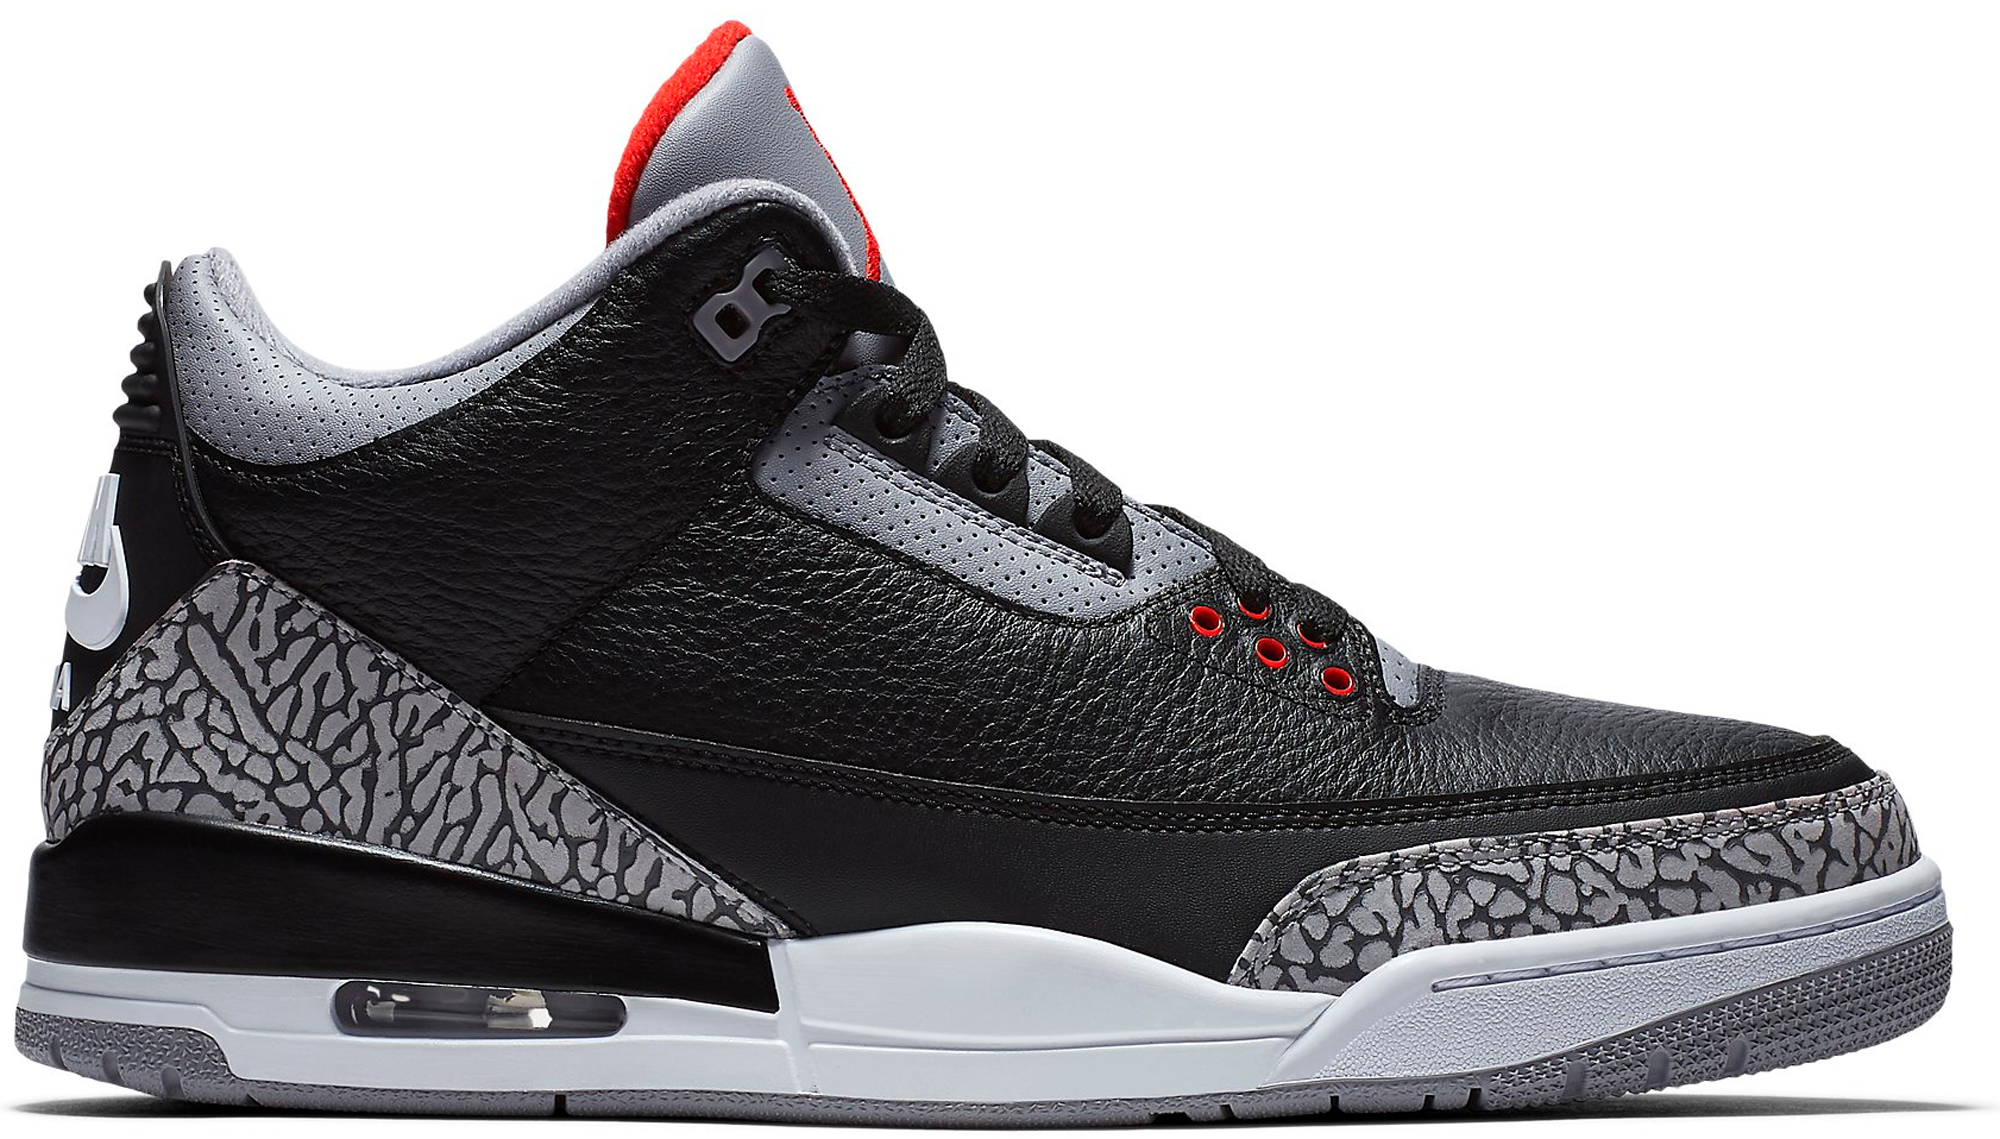 Air Jordan 3 Black Cement 2018 2aba3b20f8